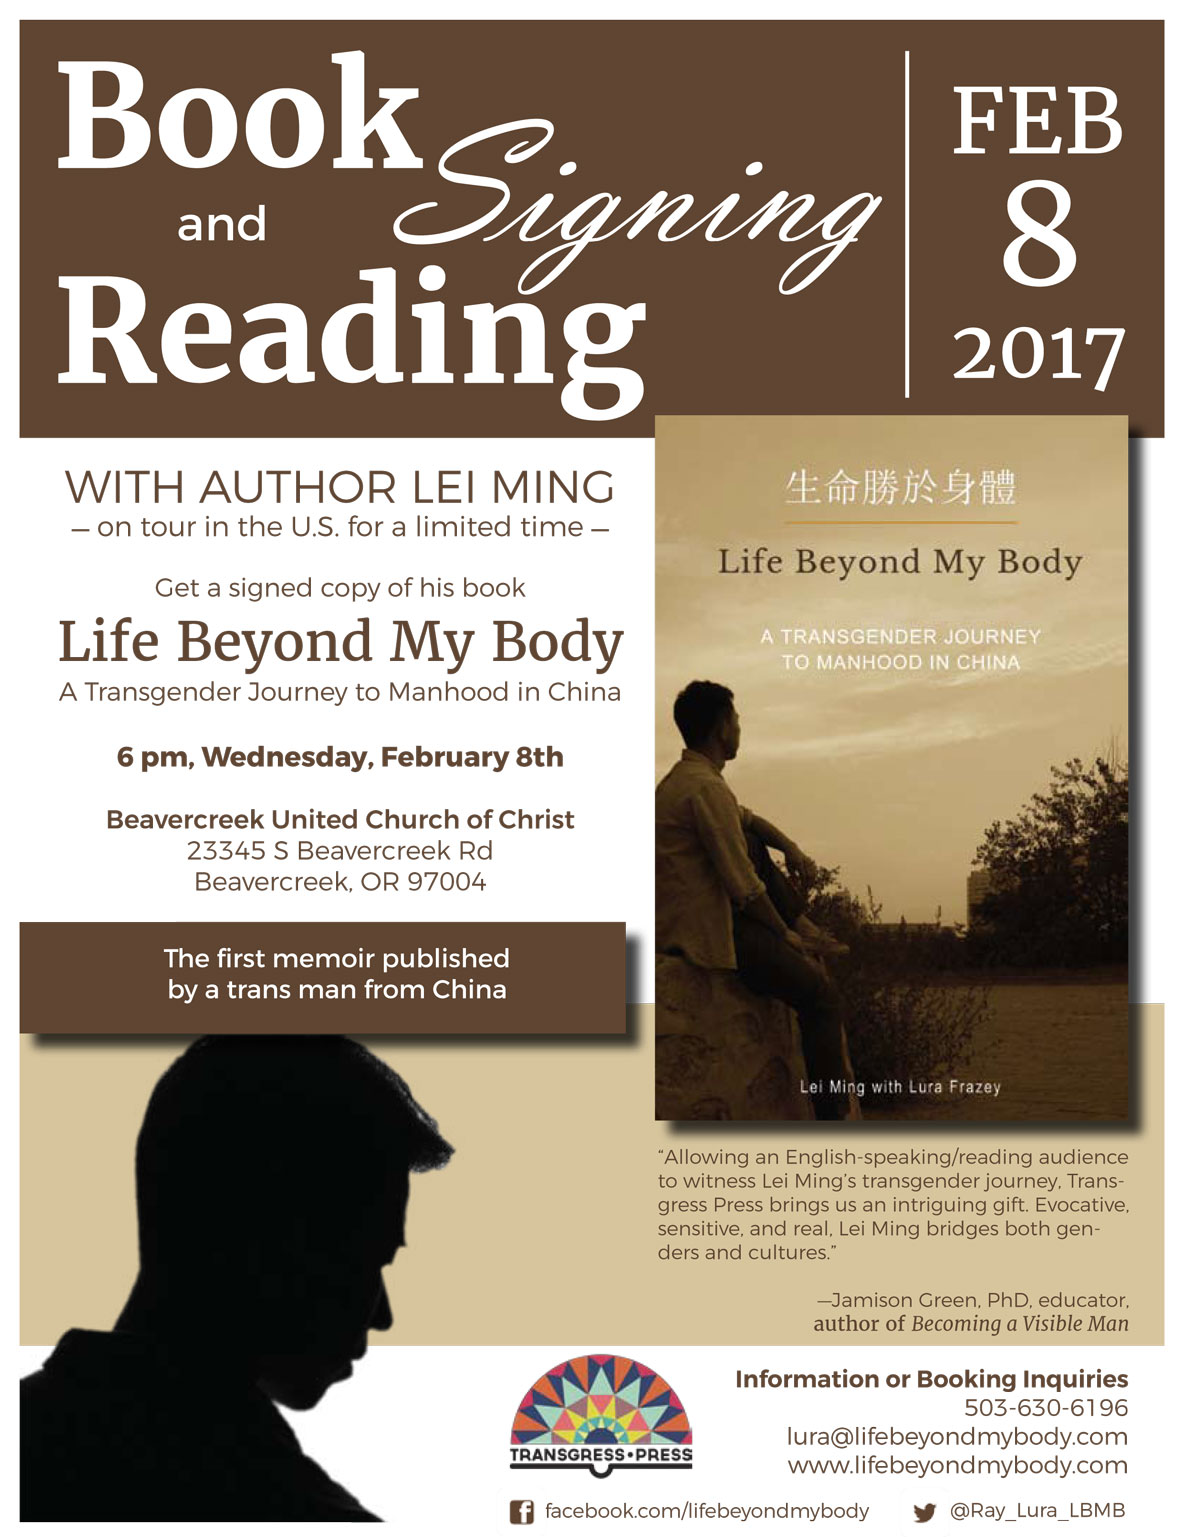 Book reading and signing February 8 at 6 pm at Beavercreek United Church of Christ